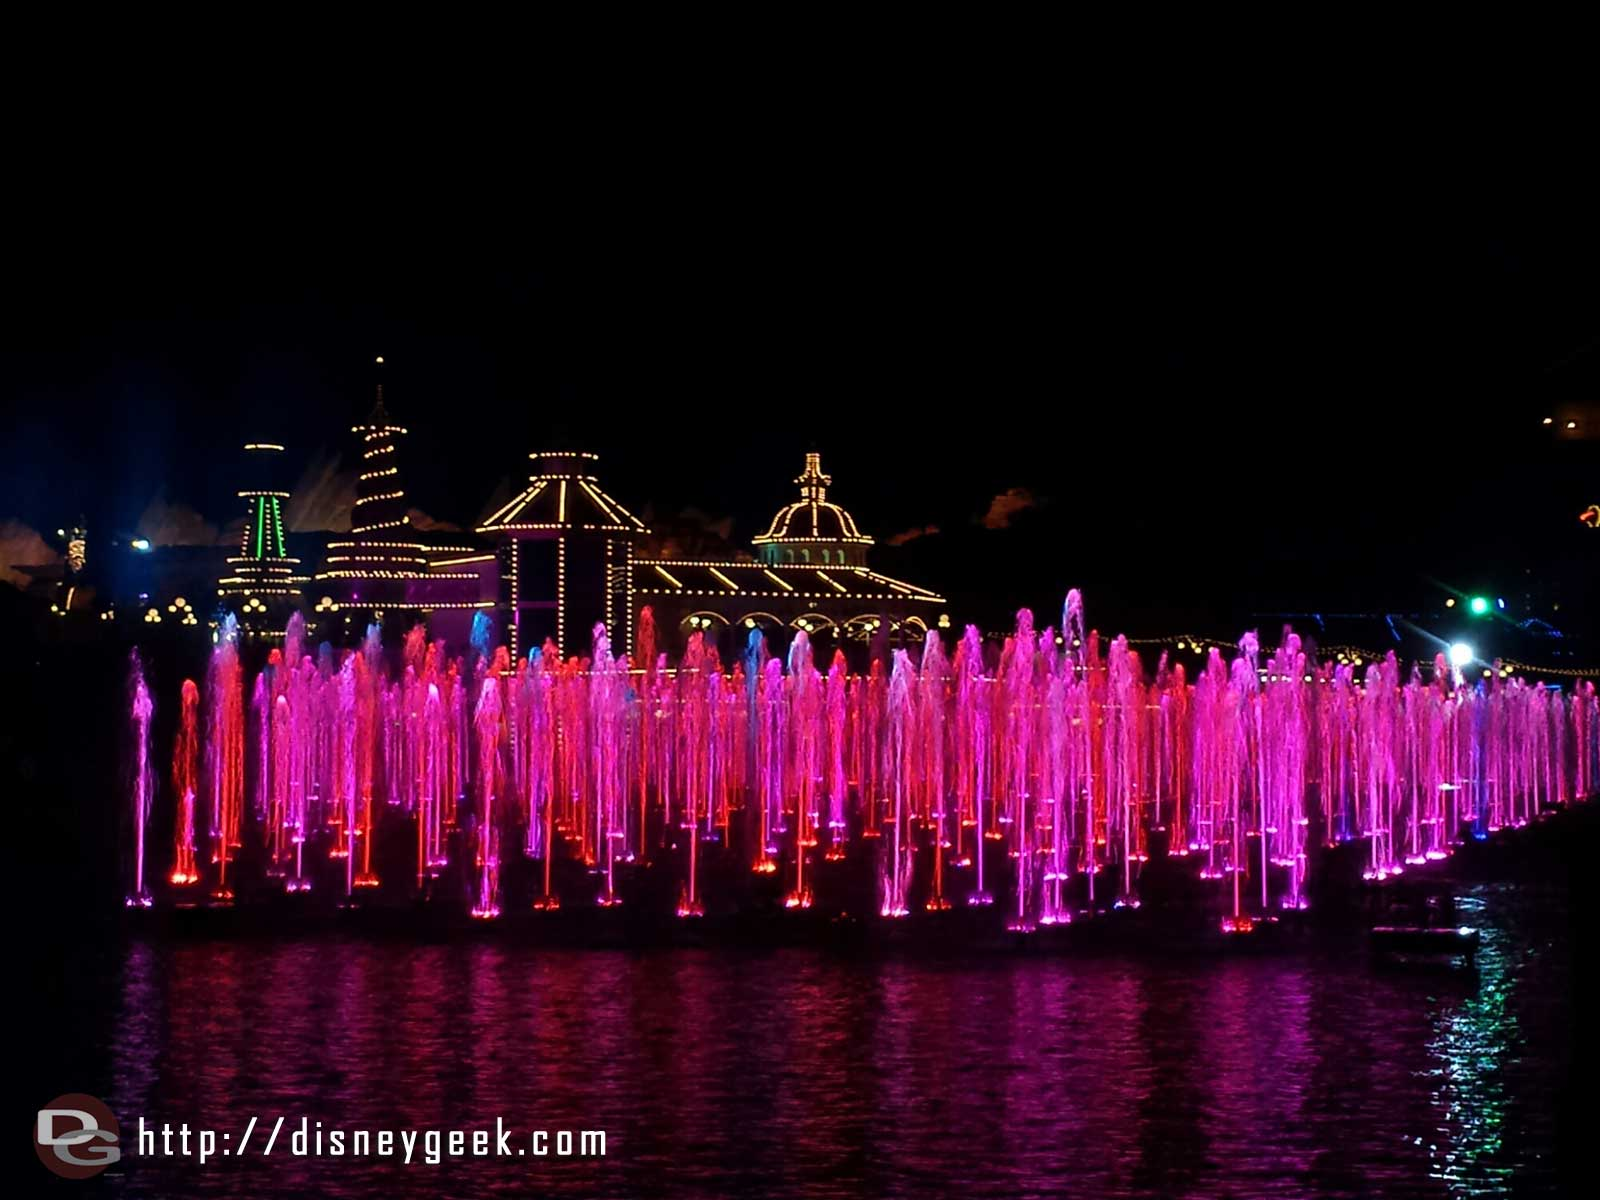 World of Color fountains